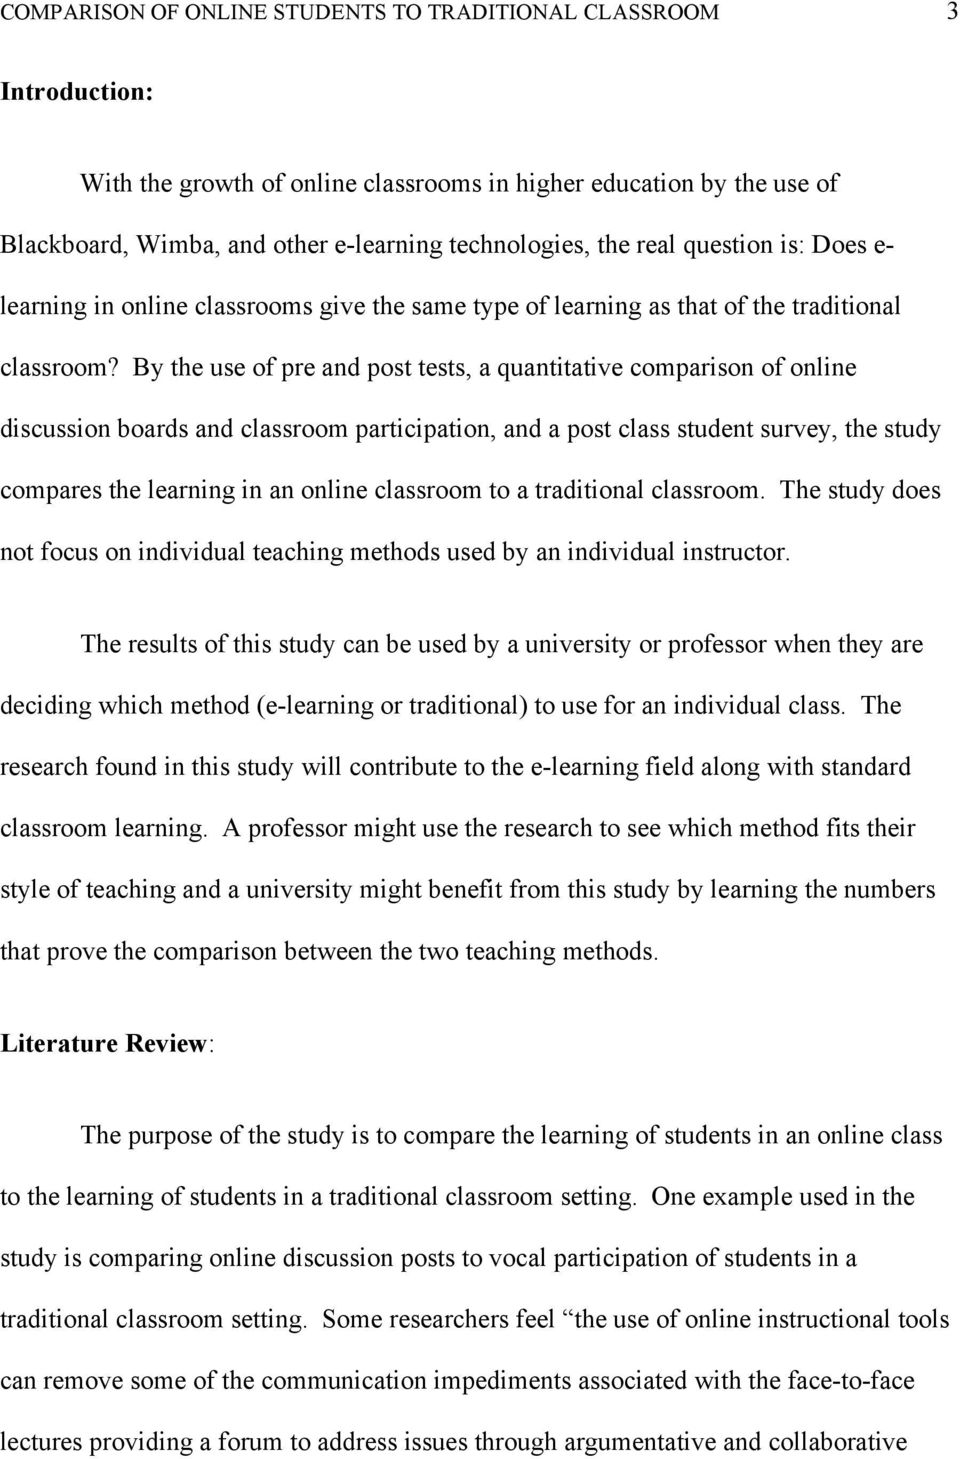 By the use of pre and post tests, a quantitative comparison of online discussion boards and classroom participation, and a post class student survey, the study compares the learning in an online